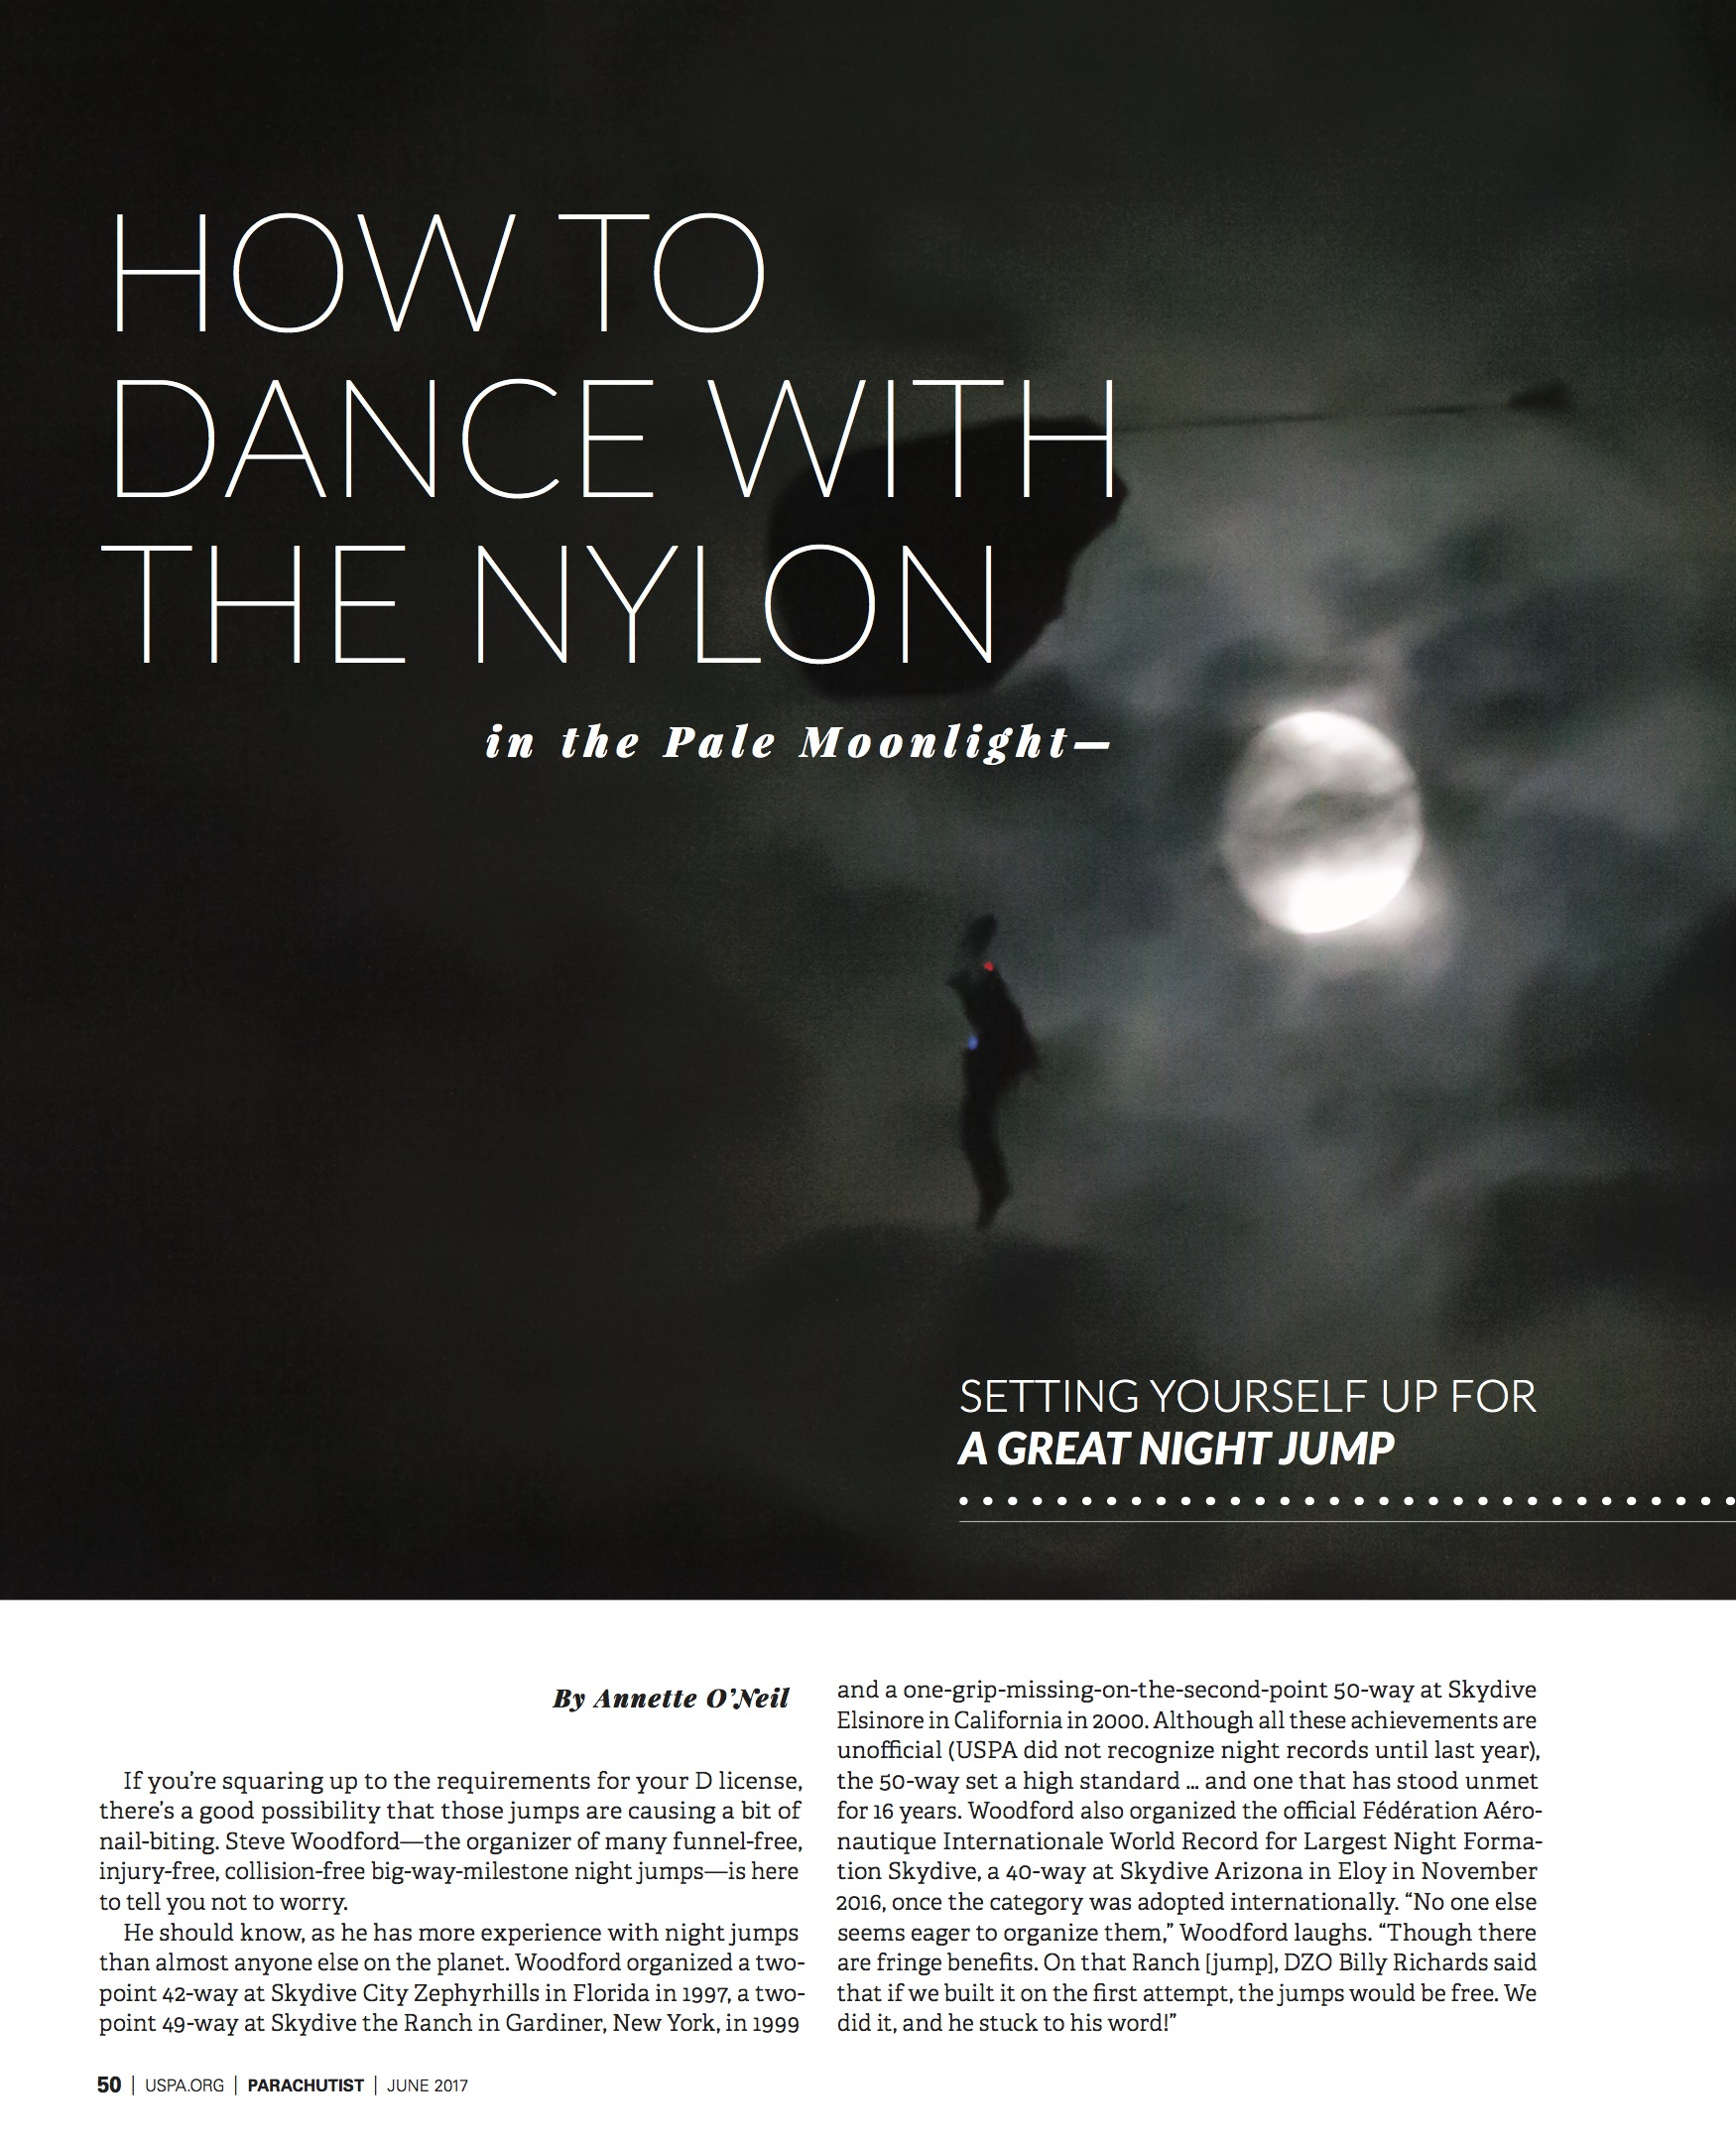 How to Dance With The Nylon In The Pale Moonlight